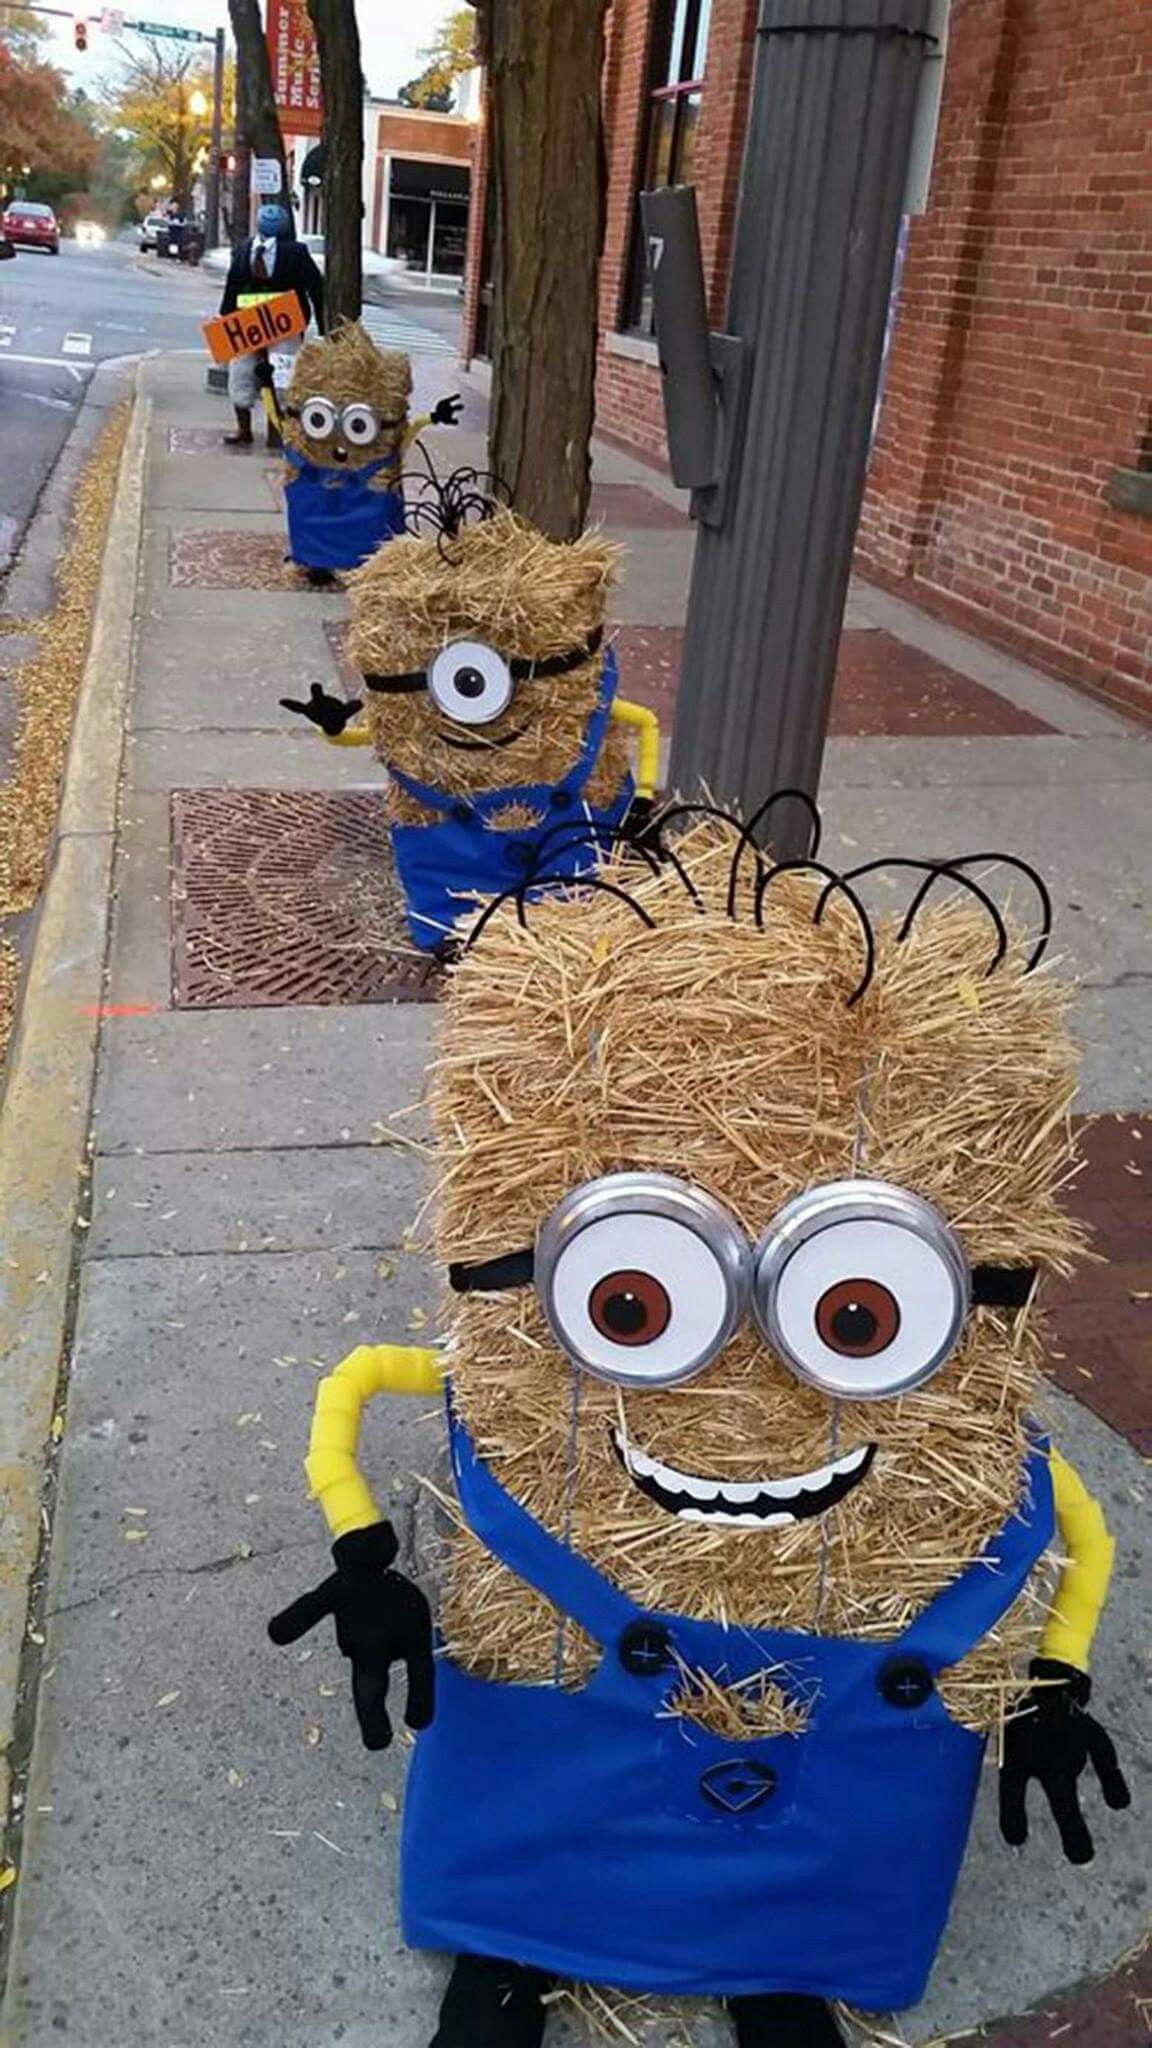 Wooden halloween yard decorations - Minion Scarecrows Made Out Of Straw Bales So Creative Minions Decorationsdiy Halloween